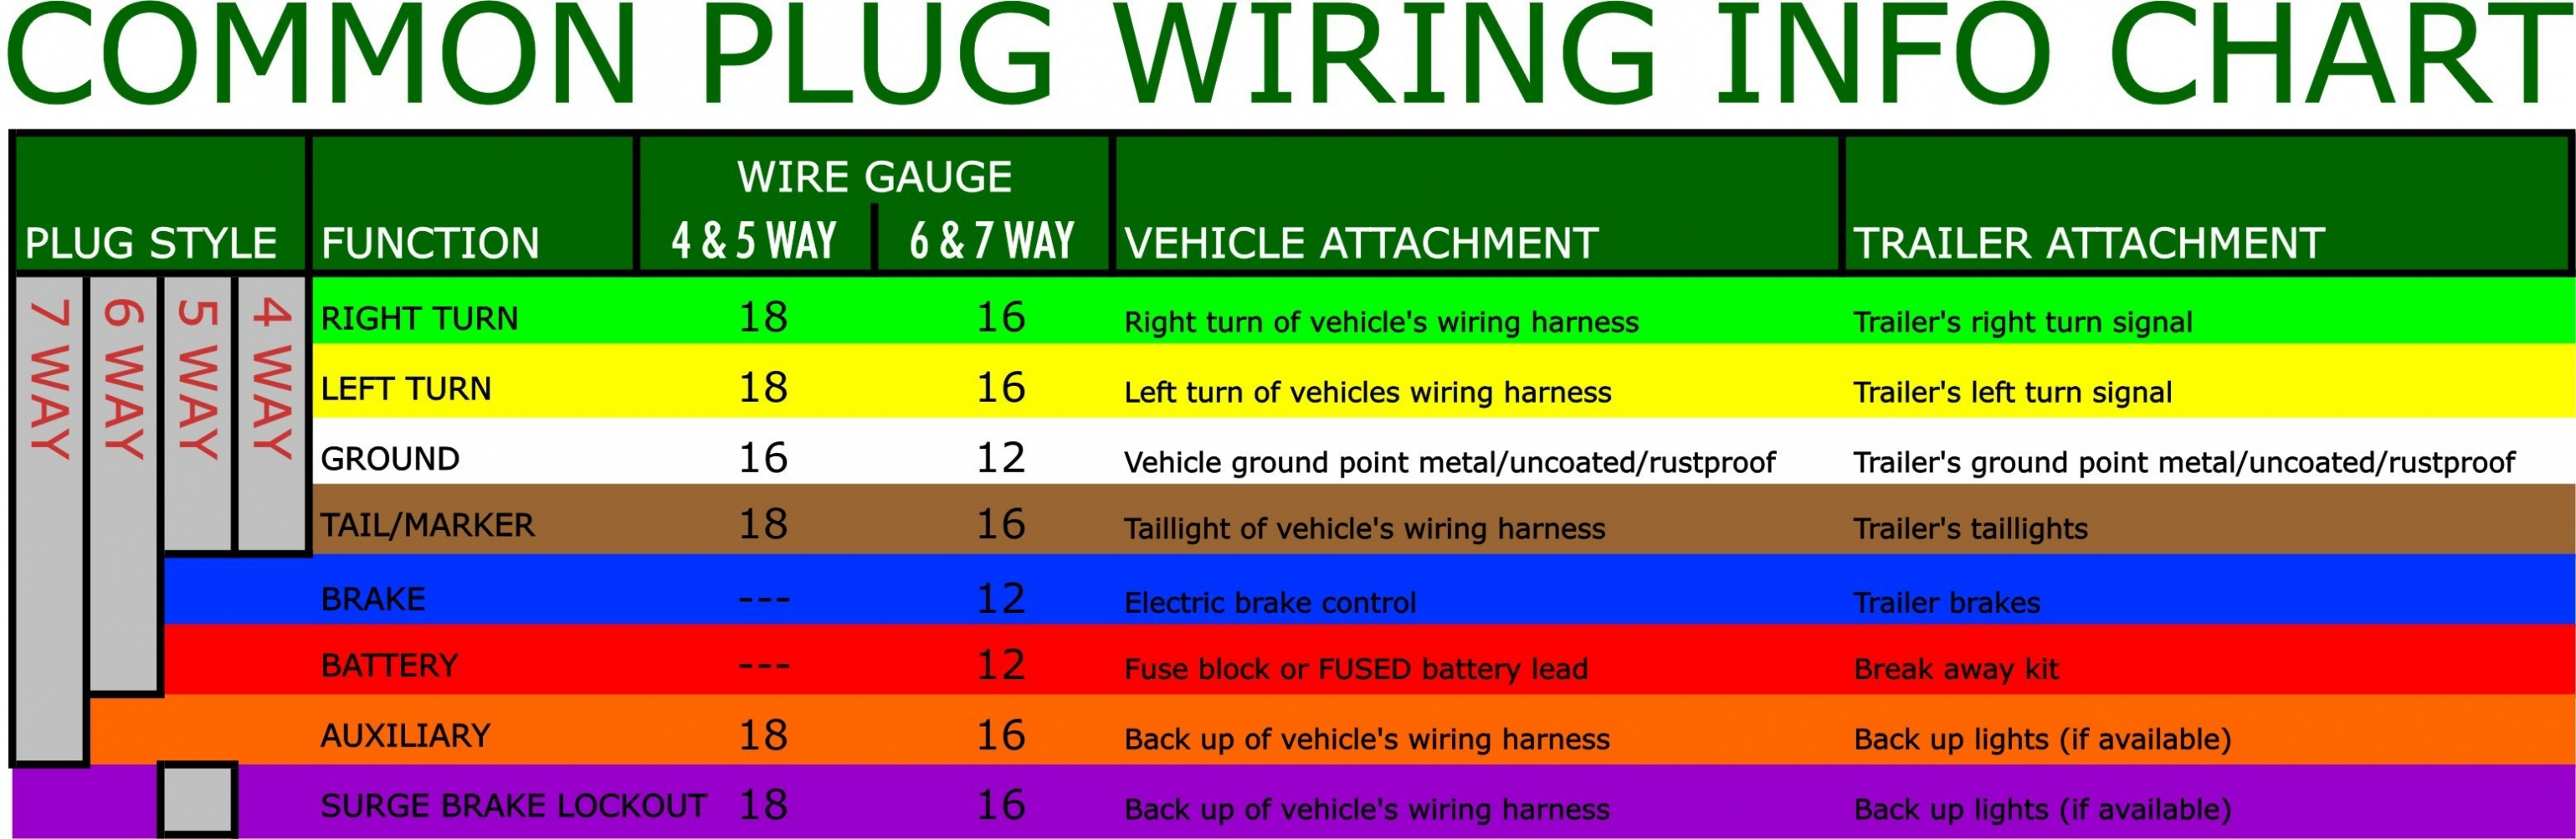 Wiring Diagram For 7 Pin Round Trailer Plug New Wiring Diagram 7 Pin - 7 Way Round Trailer Plug Wiring Diagram